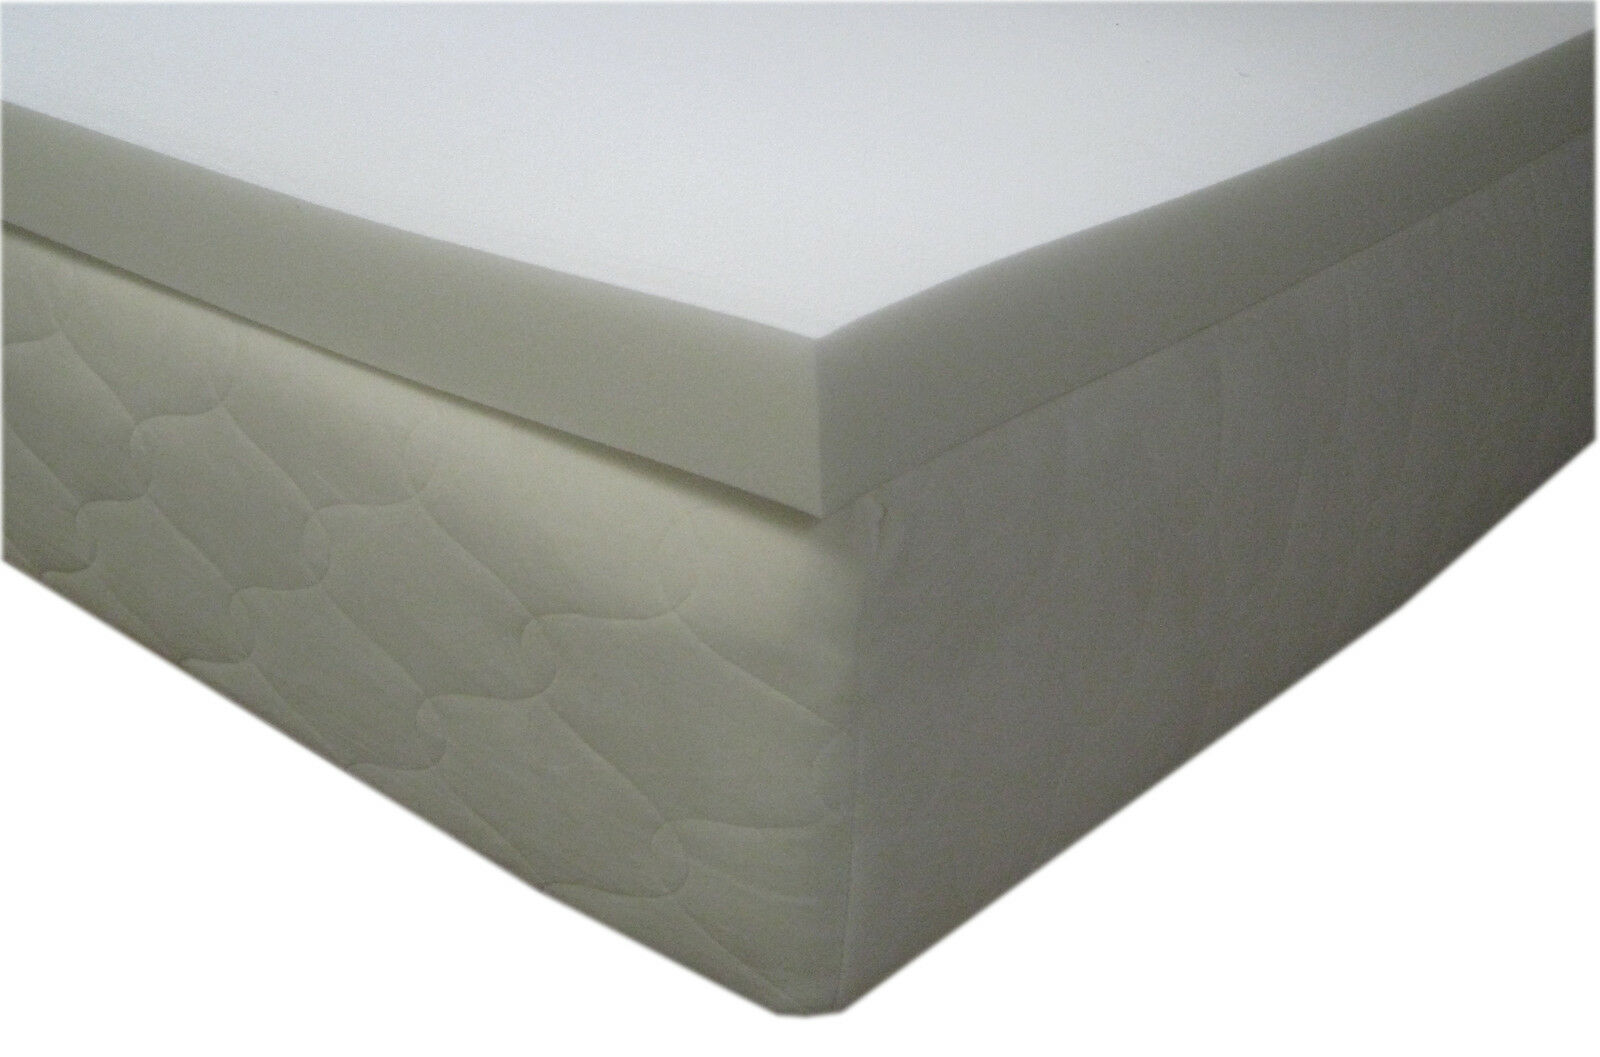 Foam Mattress Topper Deals On 1001 Blocks